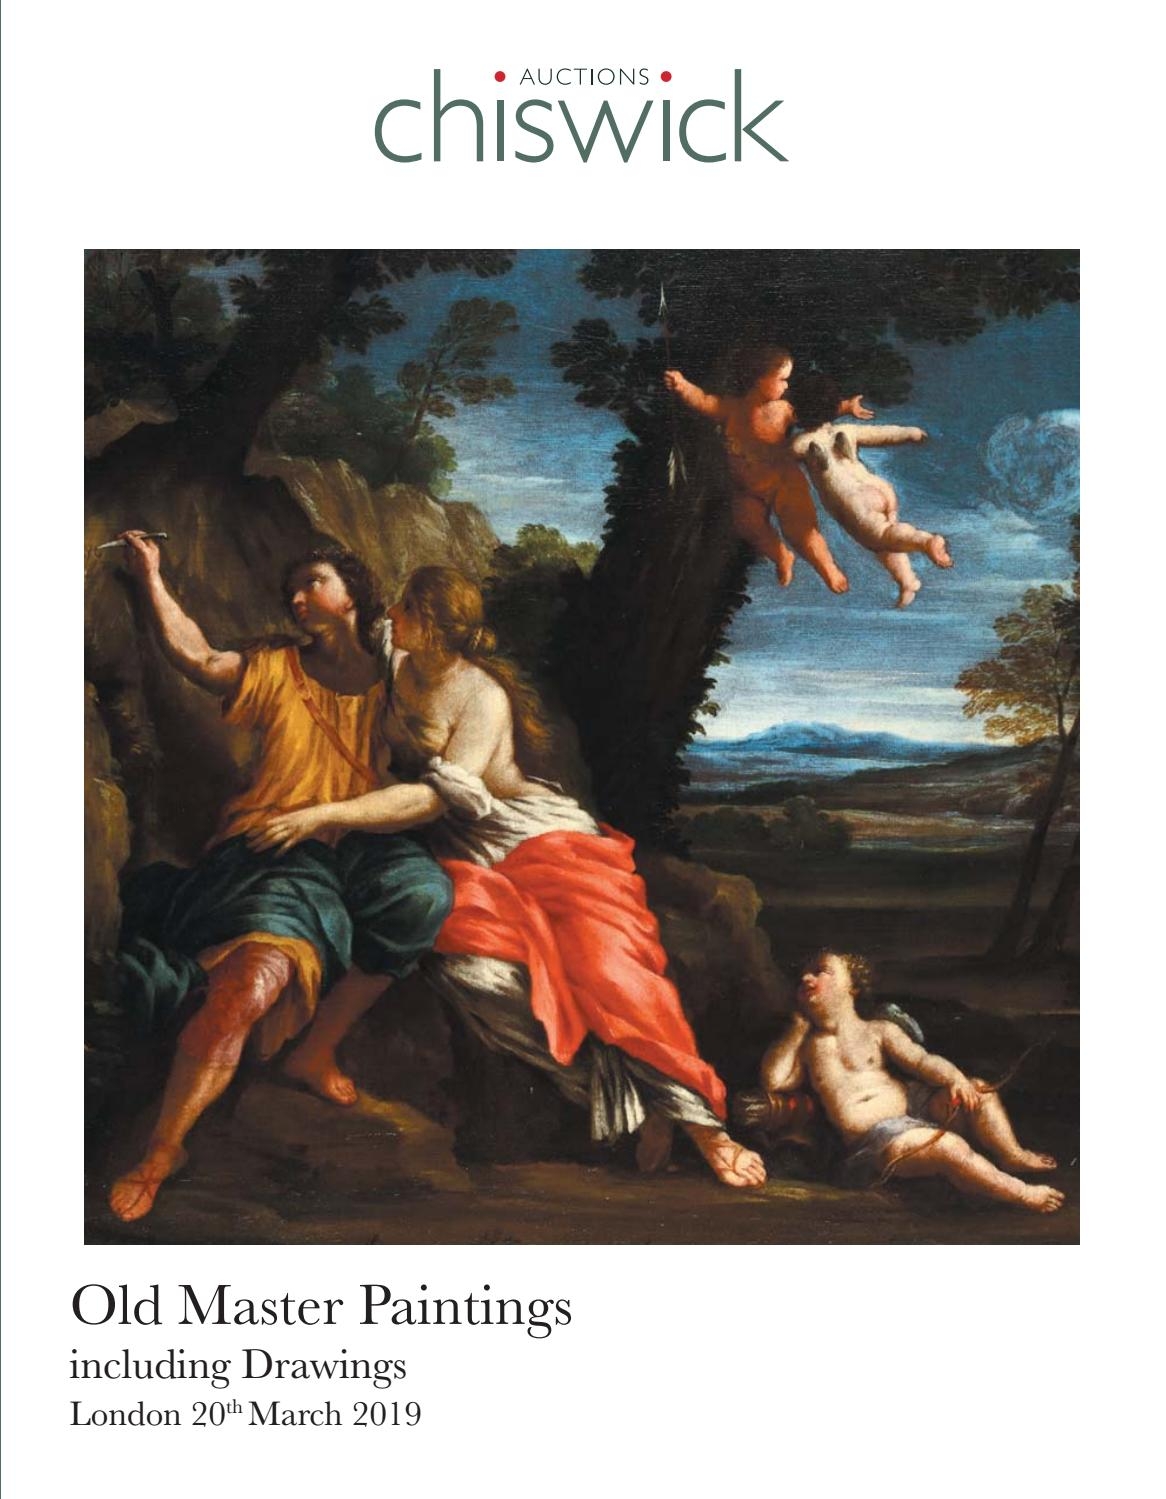 Chiswick-Auctions-Old Master-Paintings-March-2019 by Chiswick